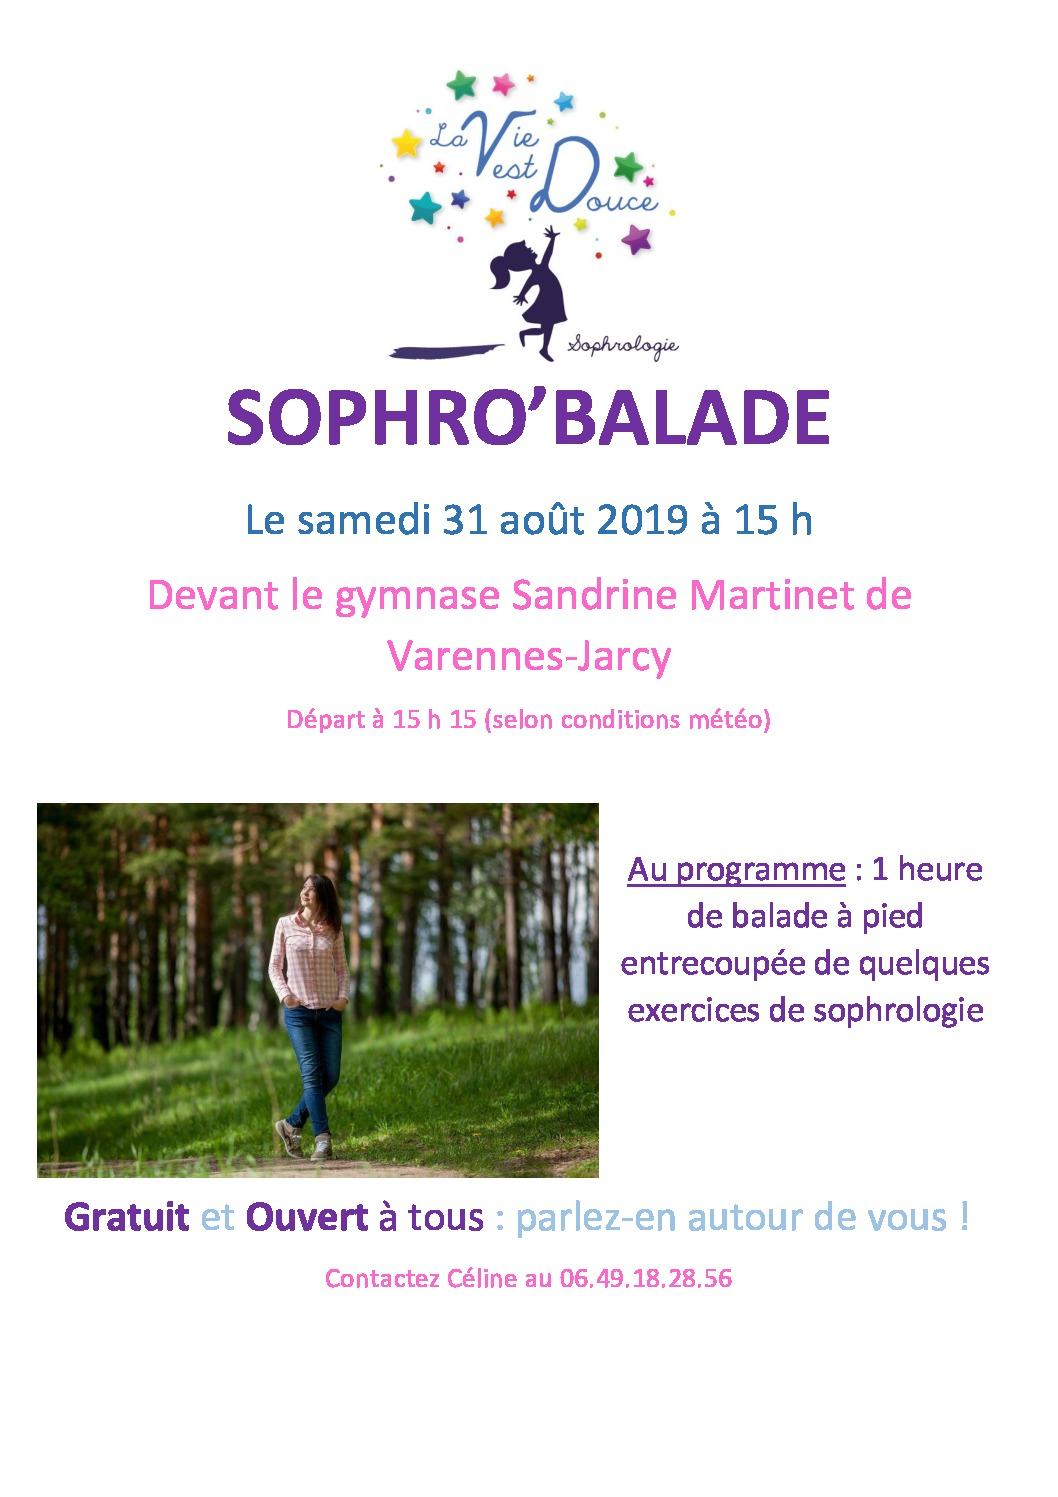 thumbnail of Sophro-balade1 Affiche